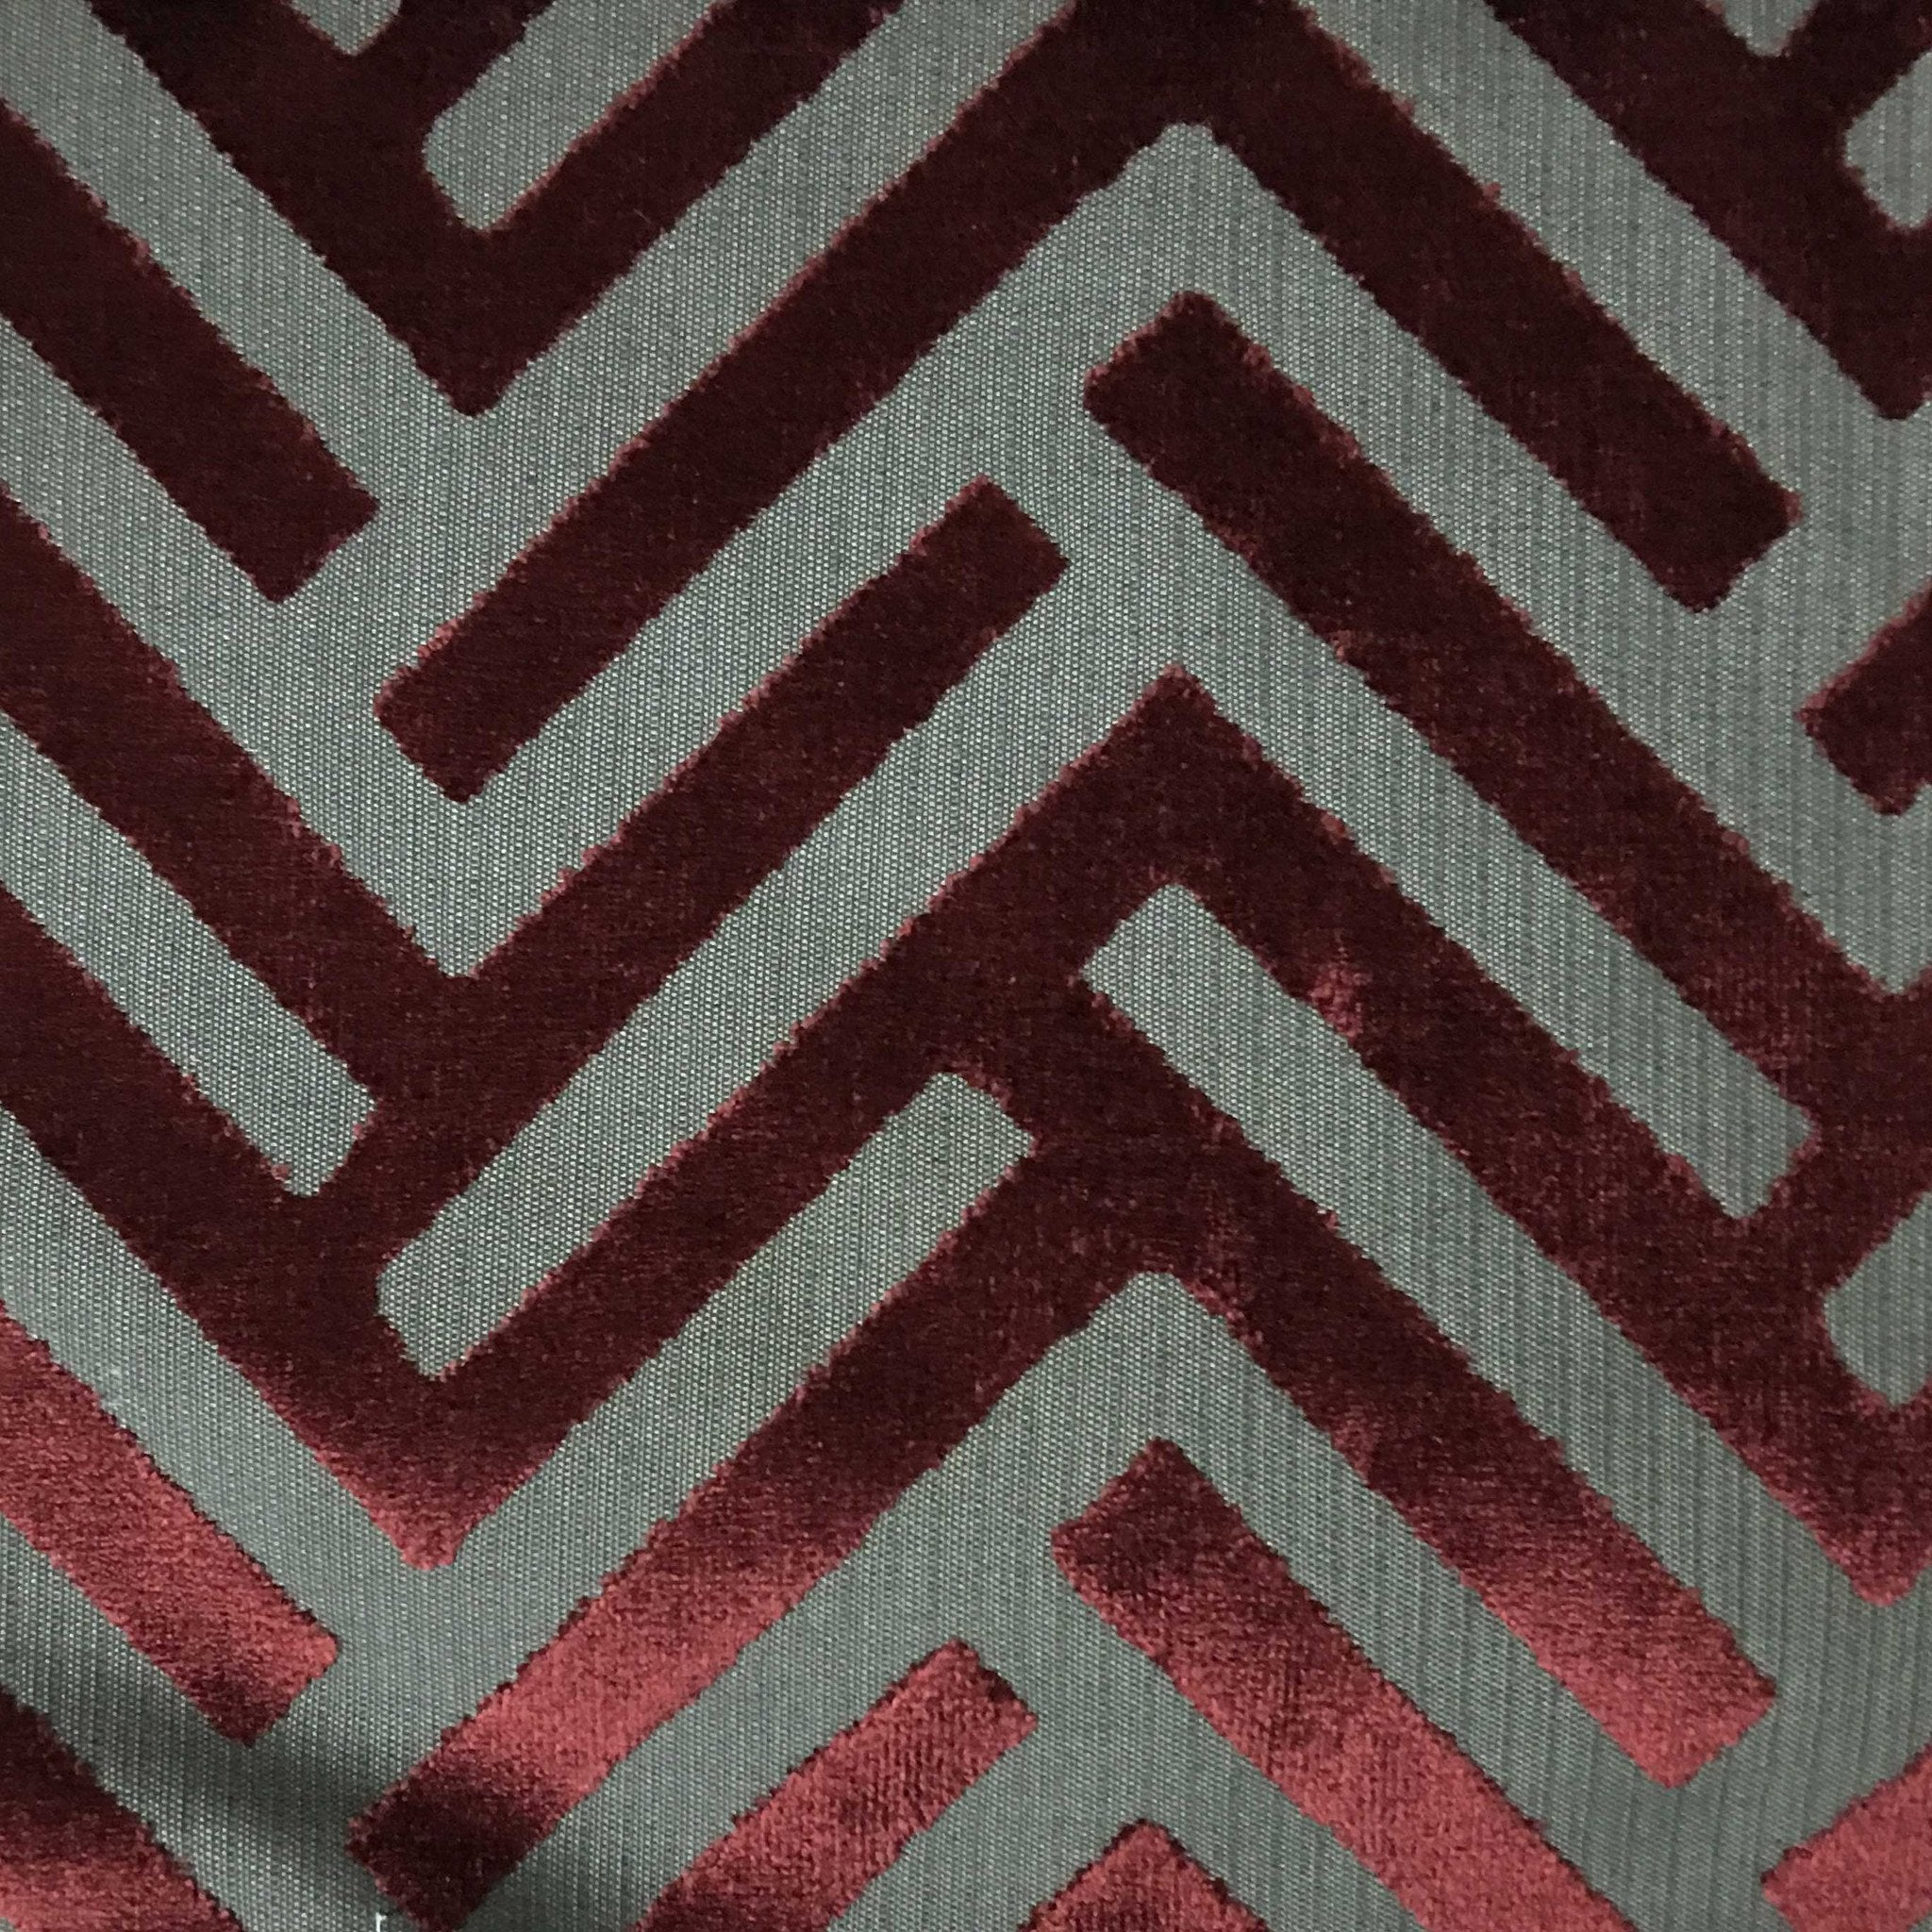 Ministry cut velvet fabric drapery upholstery fabric by the yard top fabric - Velvet great option upholstery ...